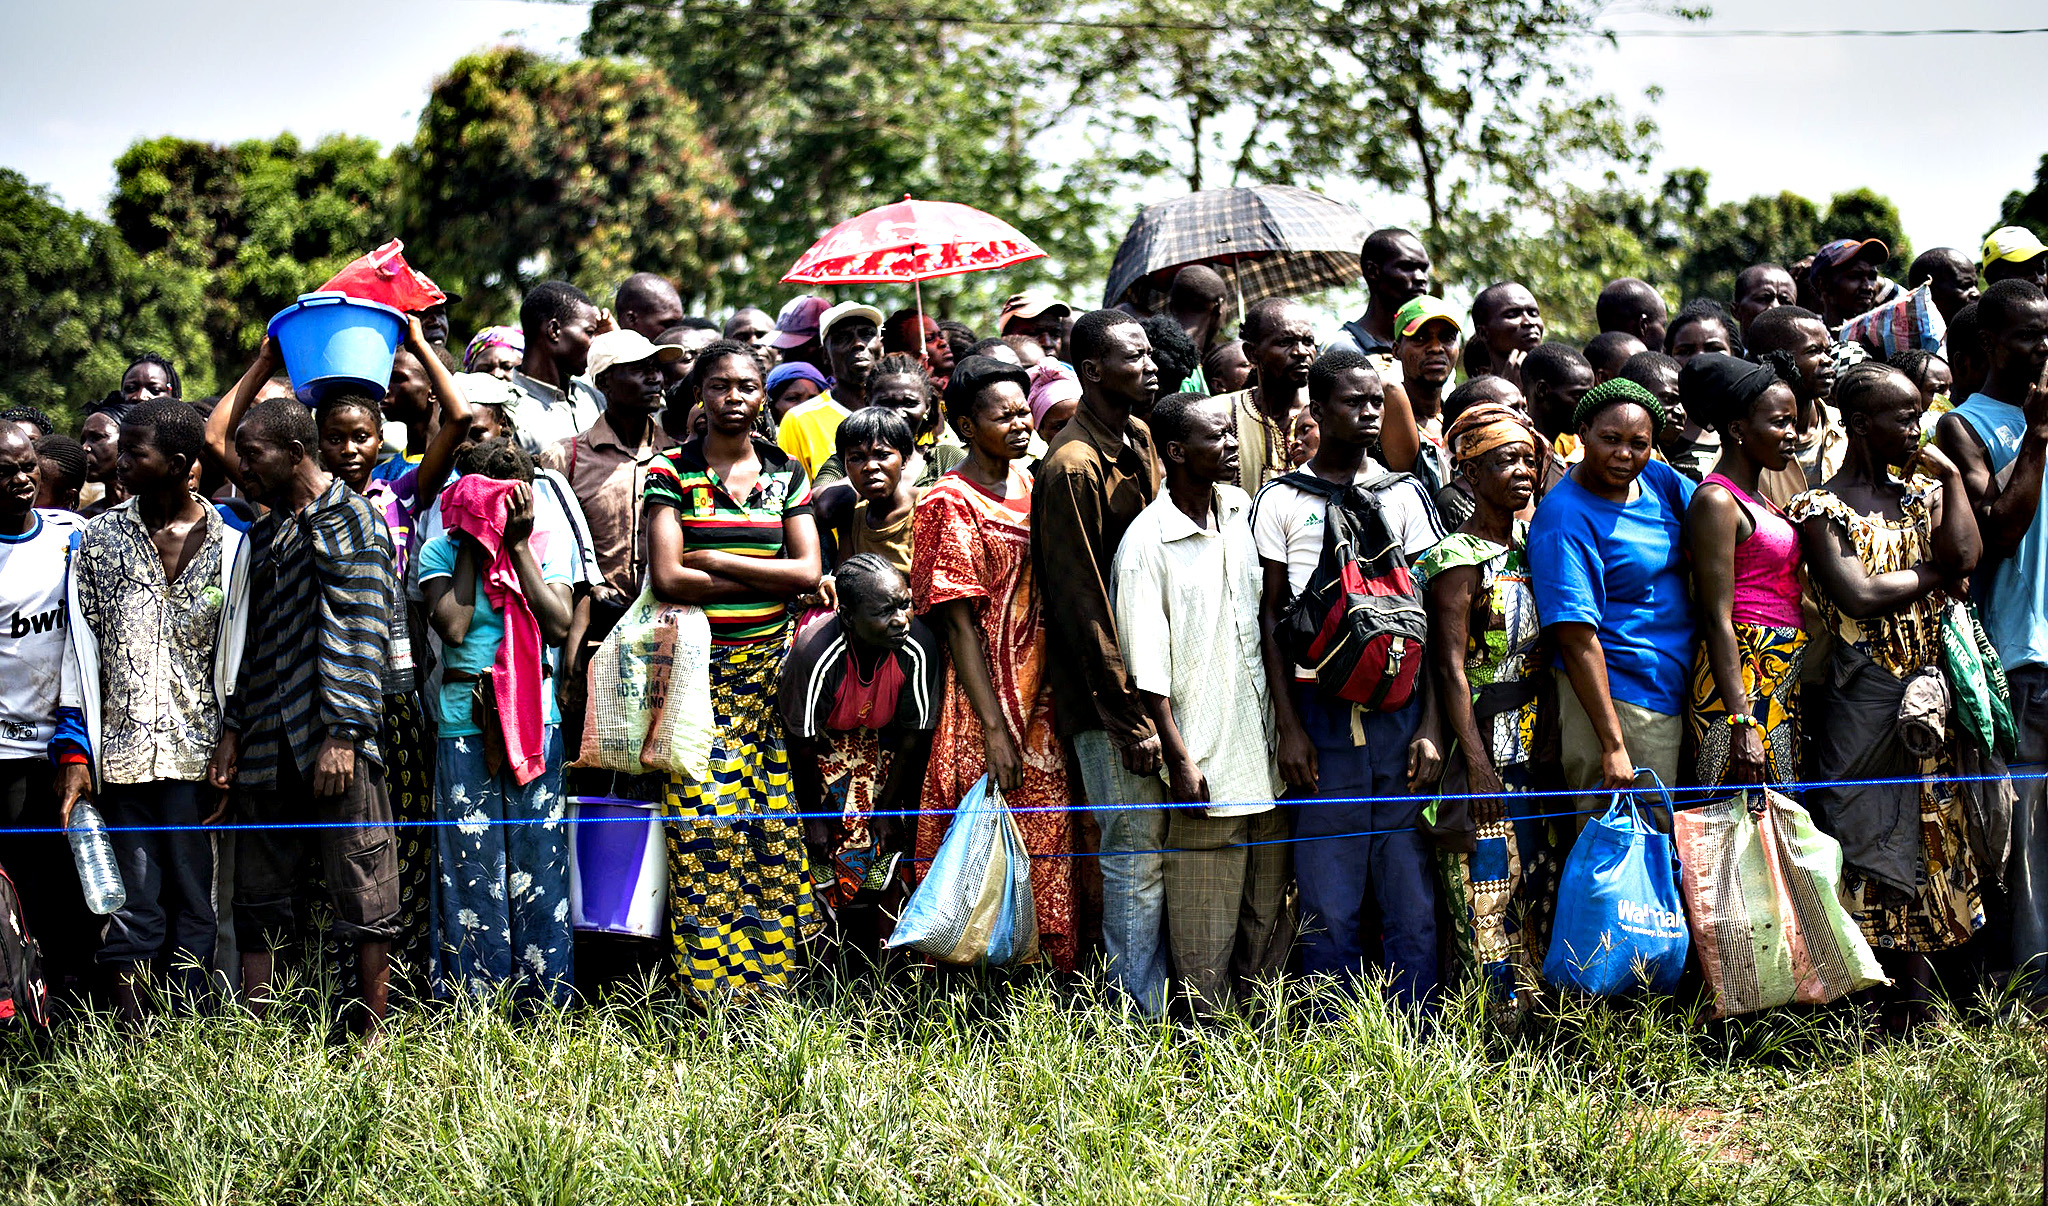 People queue to receive aid near a camp for internally displaced persons (IDP) in Bangui on December 13, 2013. Aid workers warned of a looming humanitarian crisis in the Central African capital as the UN said more than 600 people have been killed in sectarian violence in the past week and tens of thousands of residents desperate for protection have fled their homes.